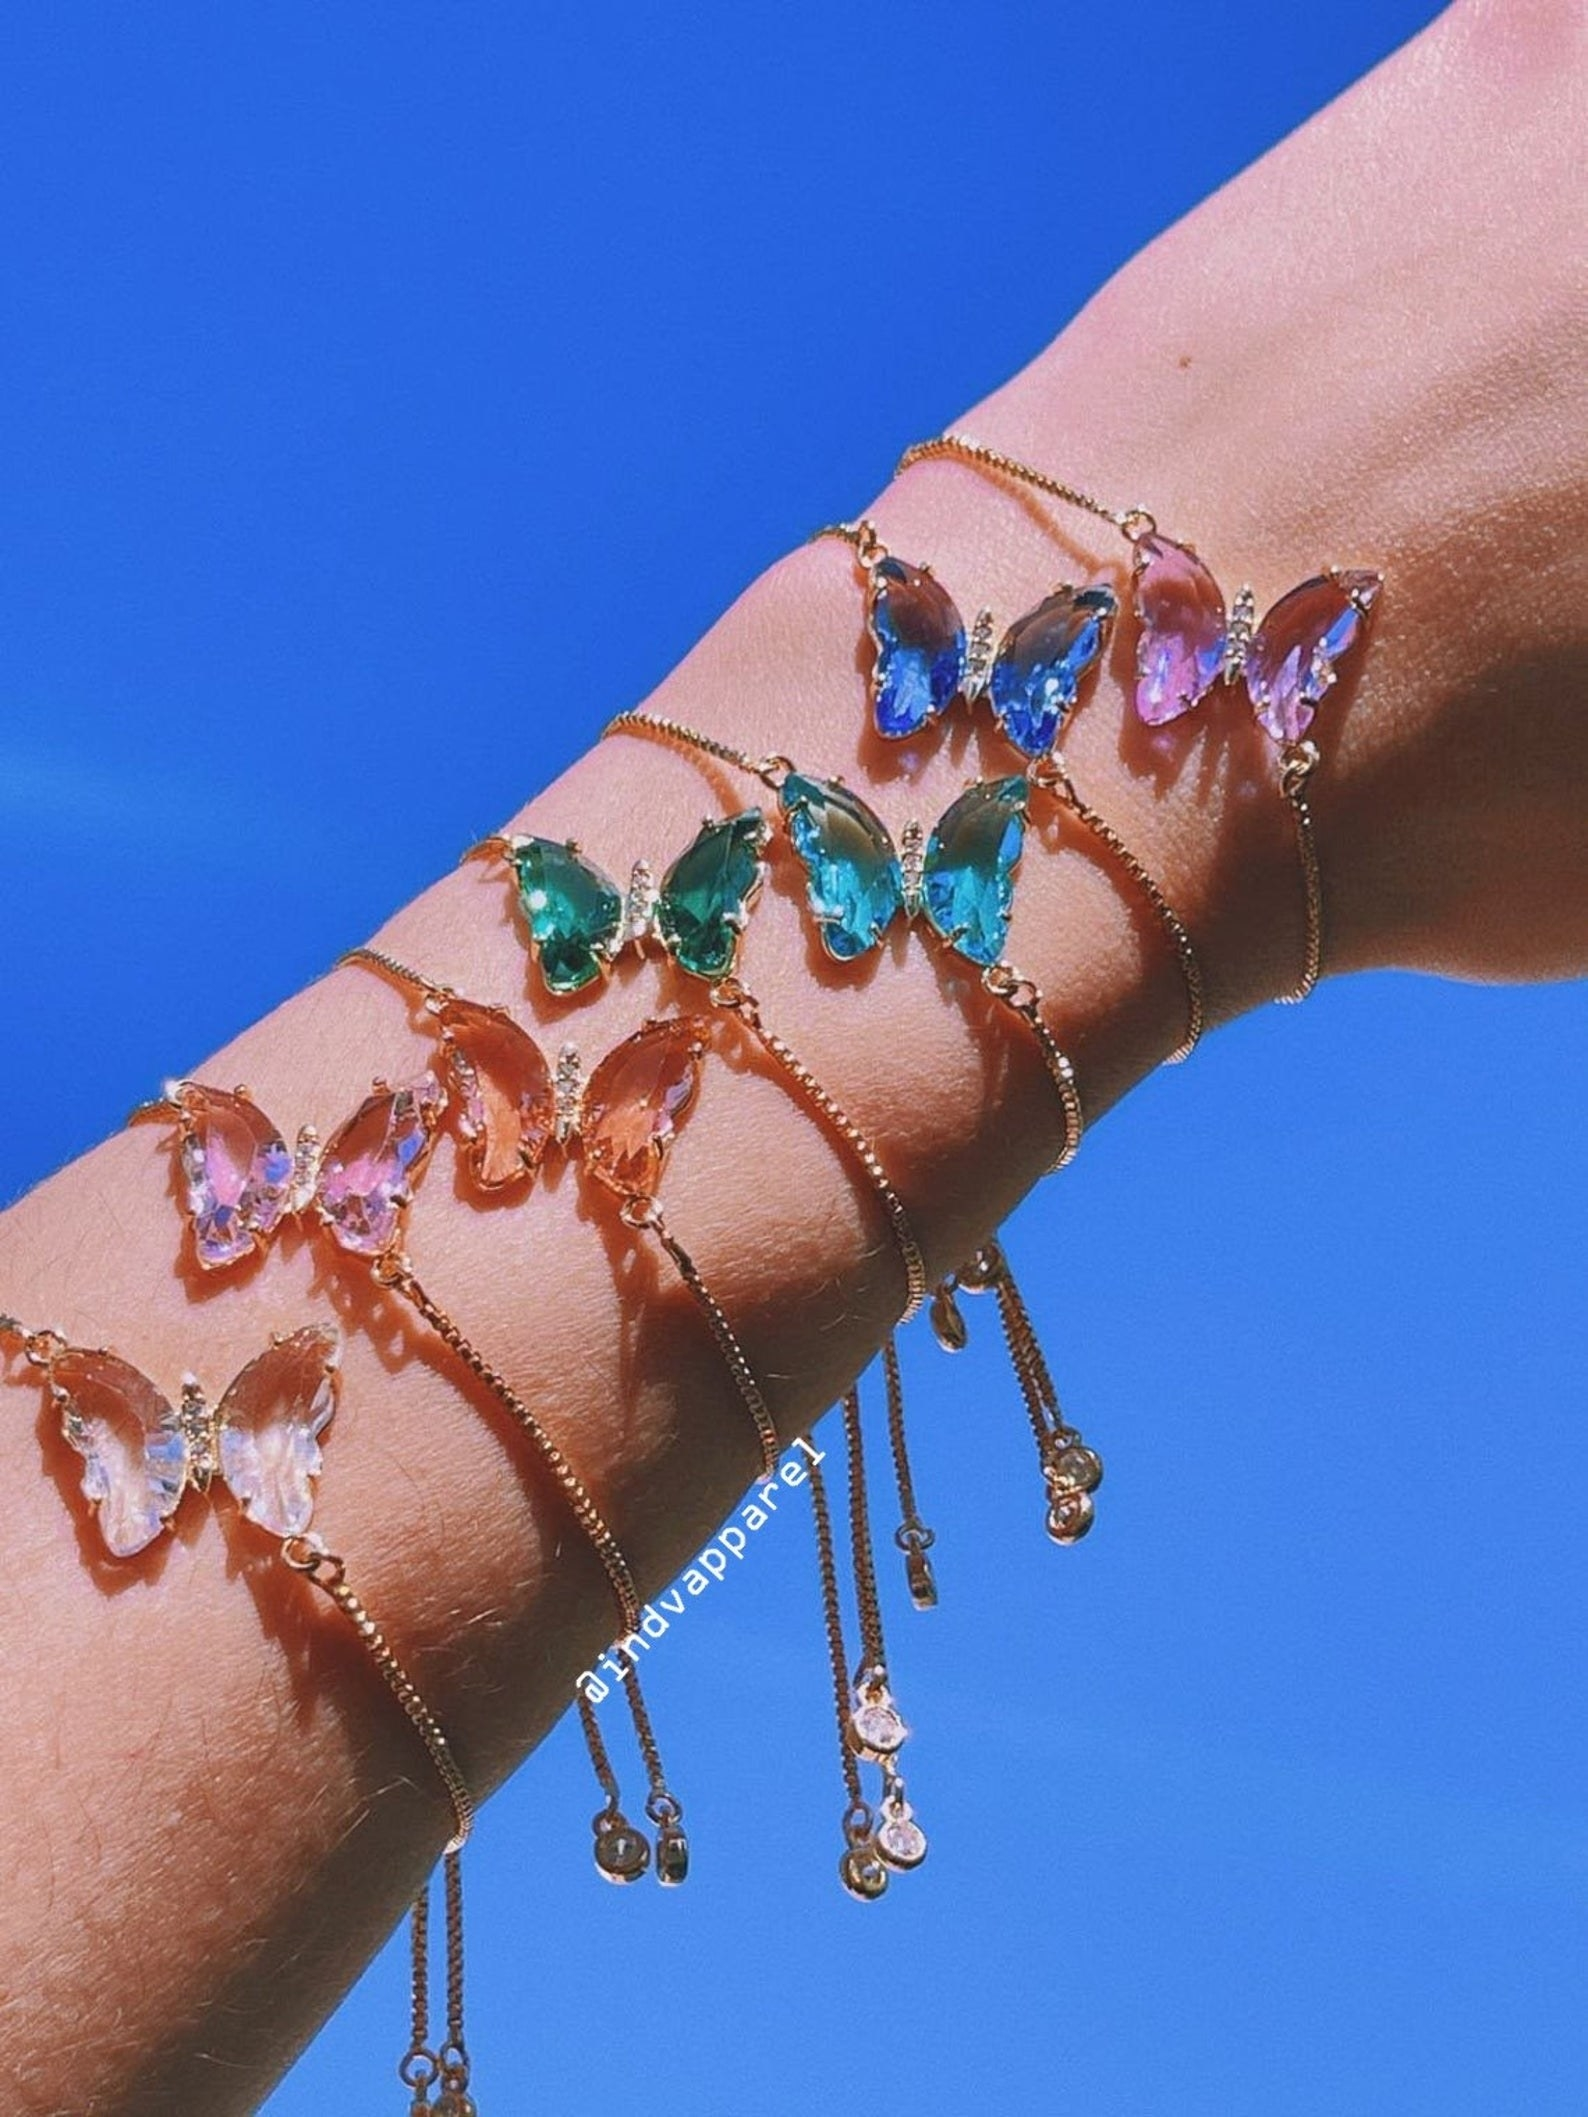 model wearing the butterfly bracelet in several different colors